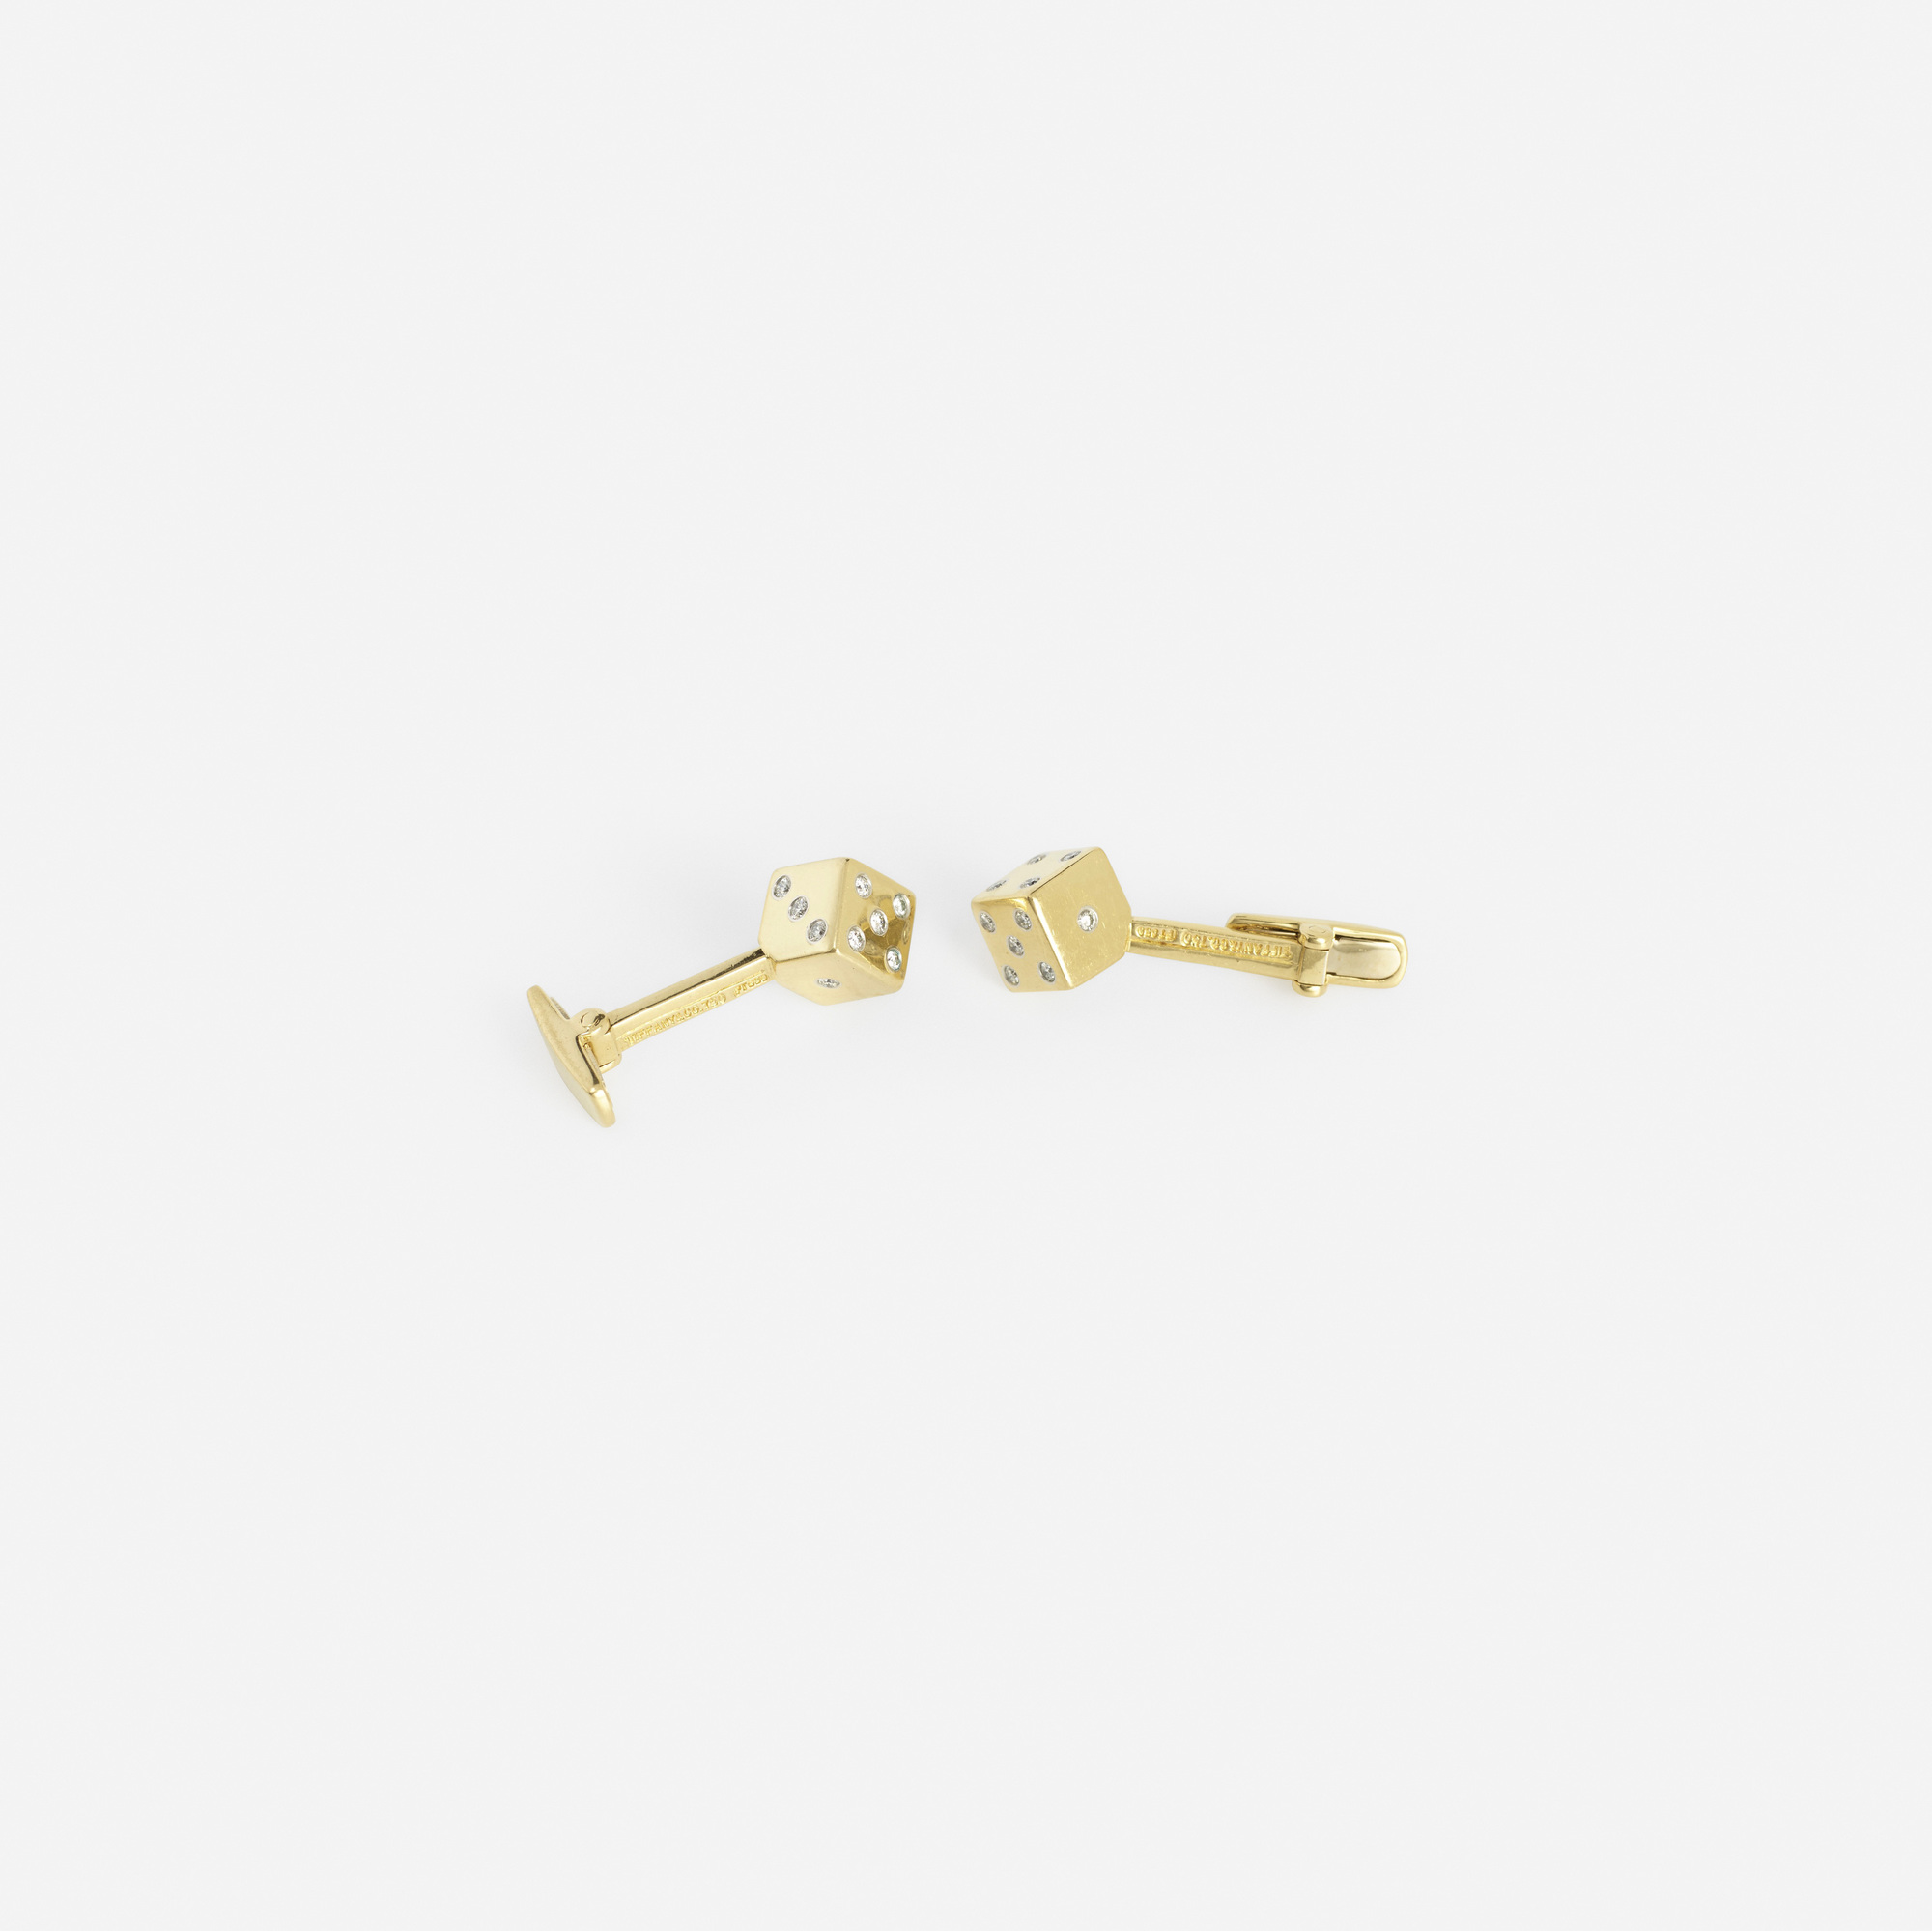 301: Tiffany & Co. / A pair of gold, platinum and diamond Dice cufflinks (2 of 2)